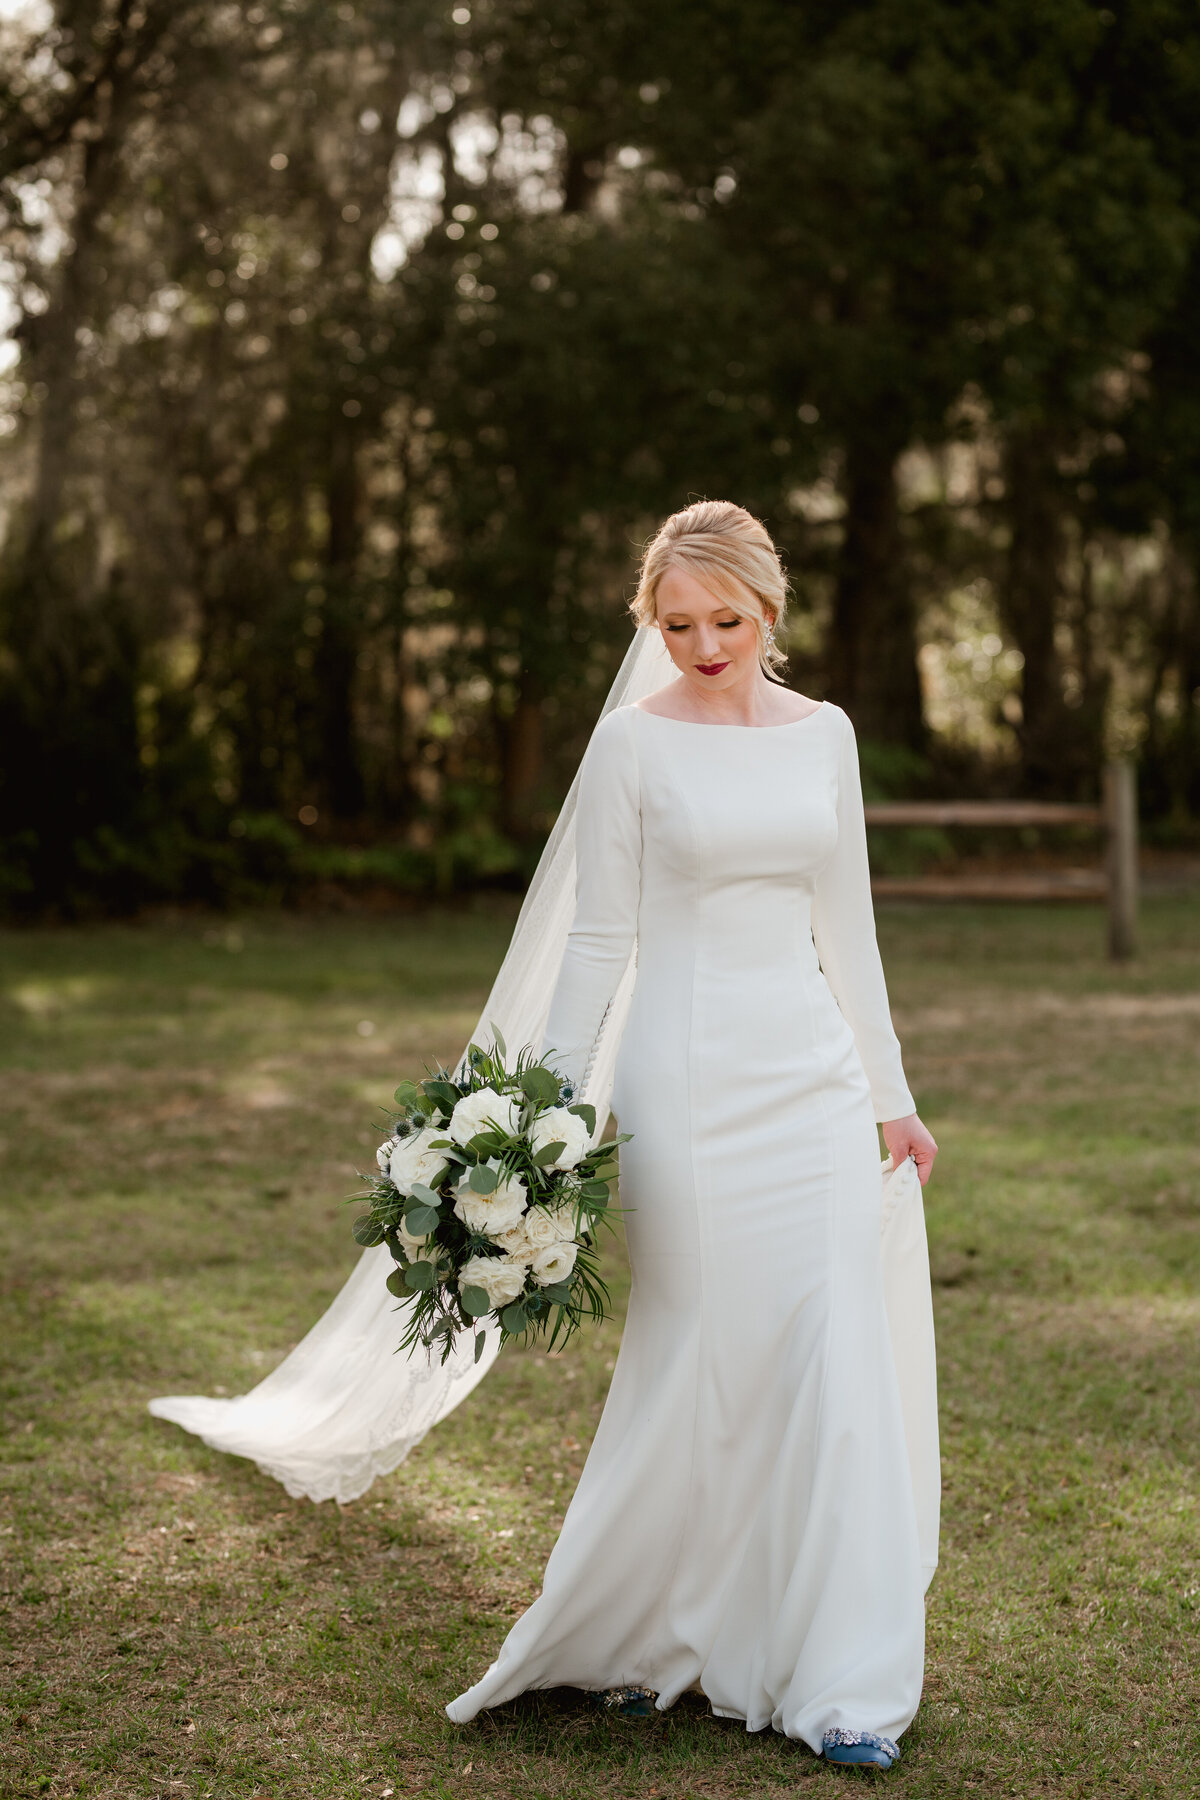 Beautiful bride in elegant gown taken by professional wedding photographer in Gainesville, Florida